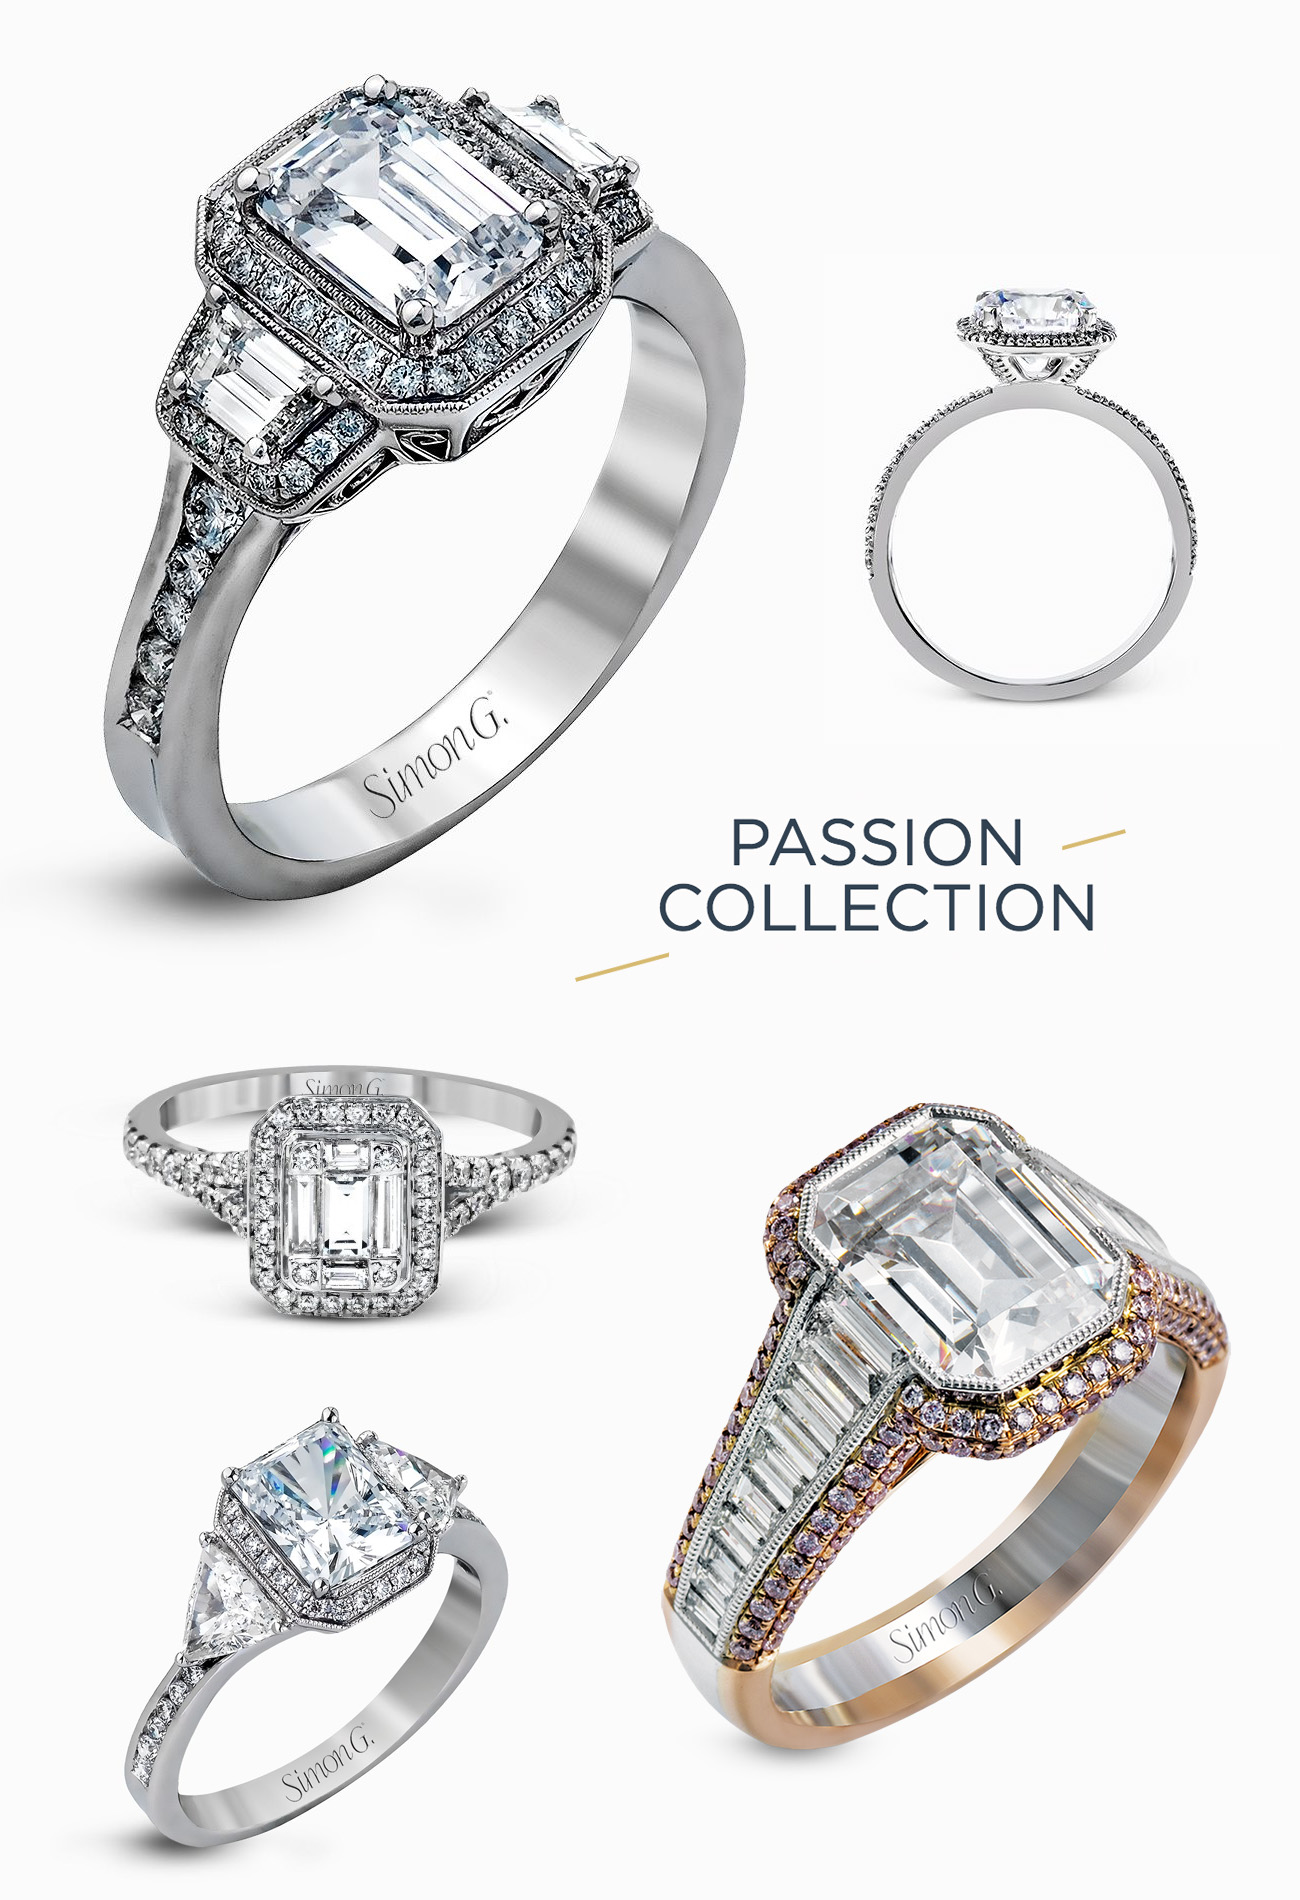 engagement rings from Simon G